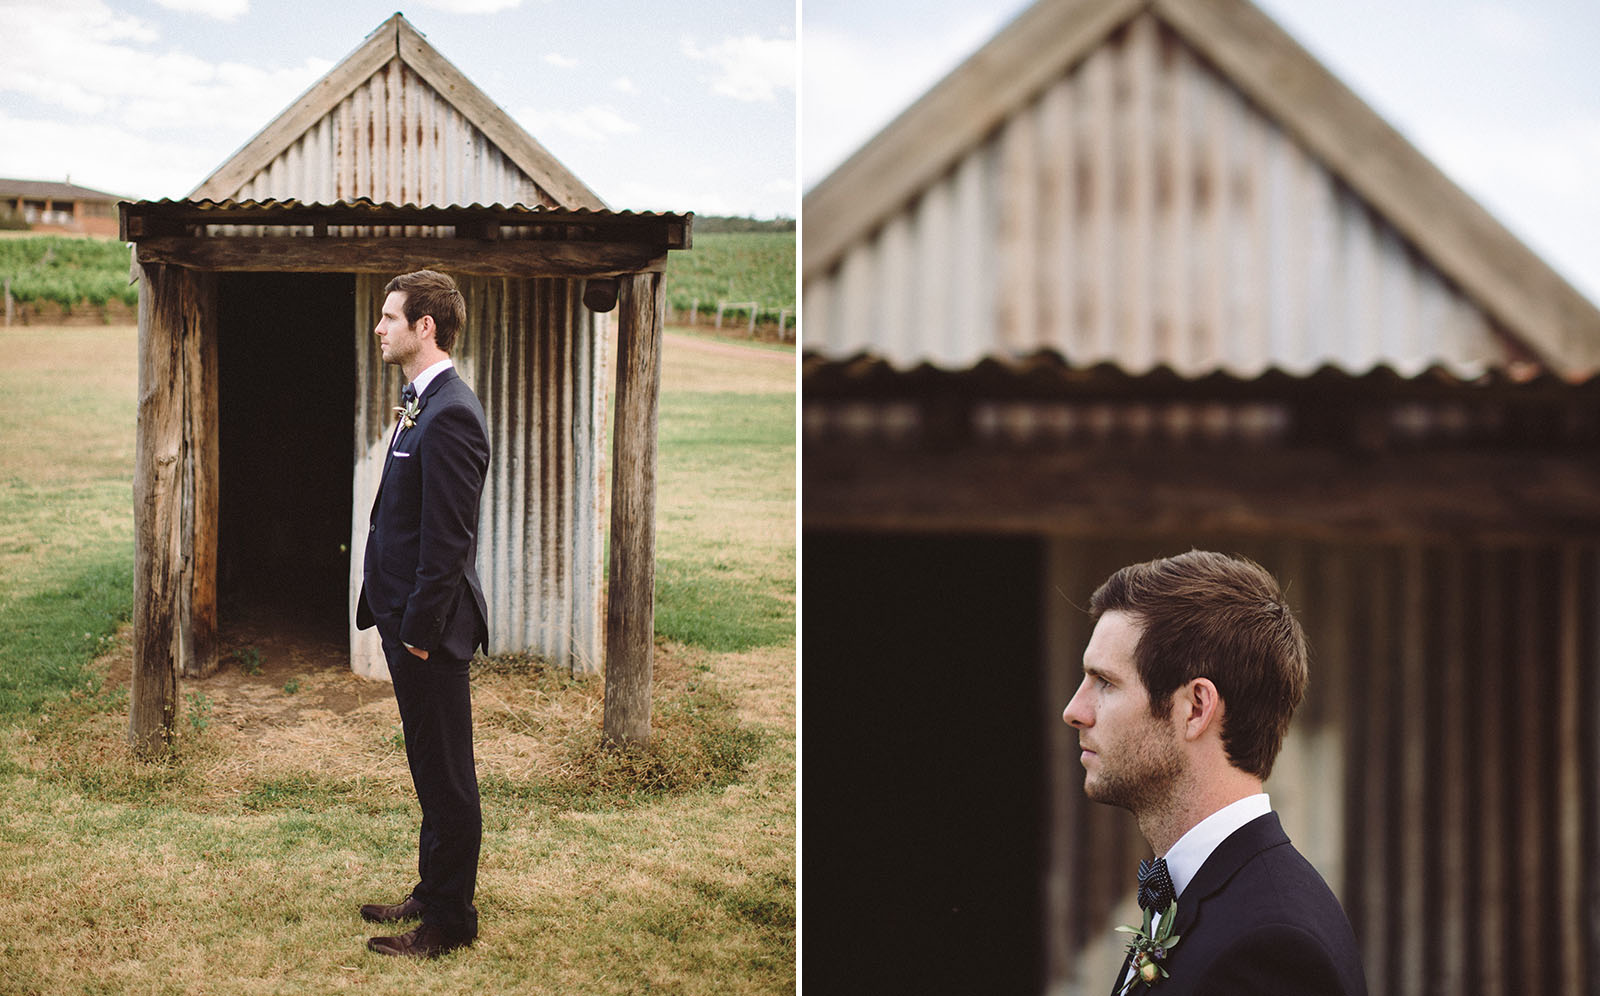 handsome groom wedding photograph